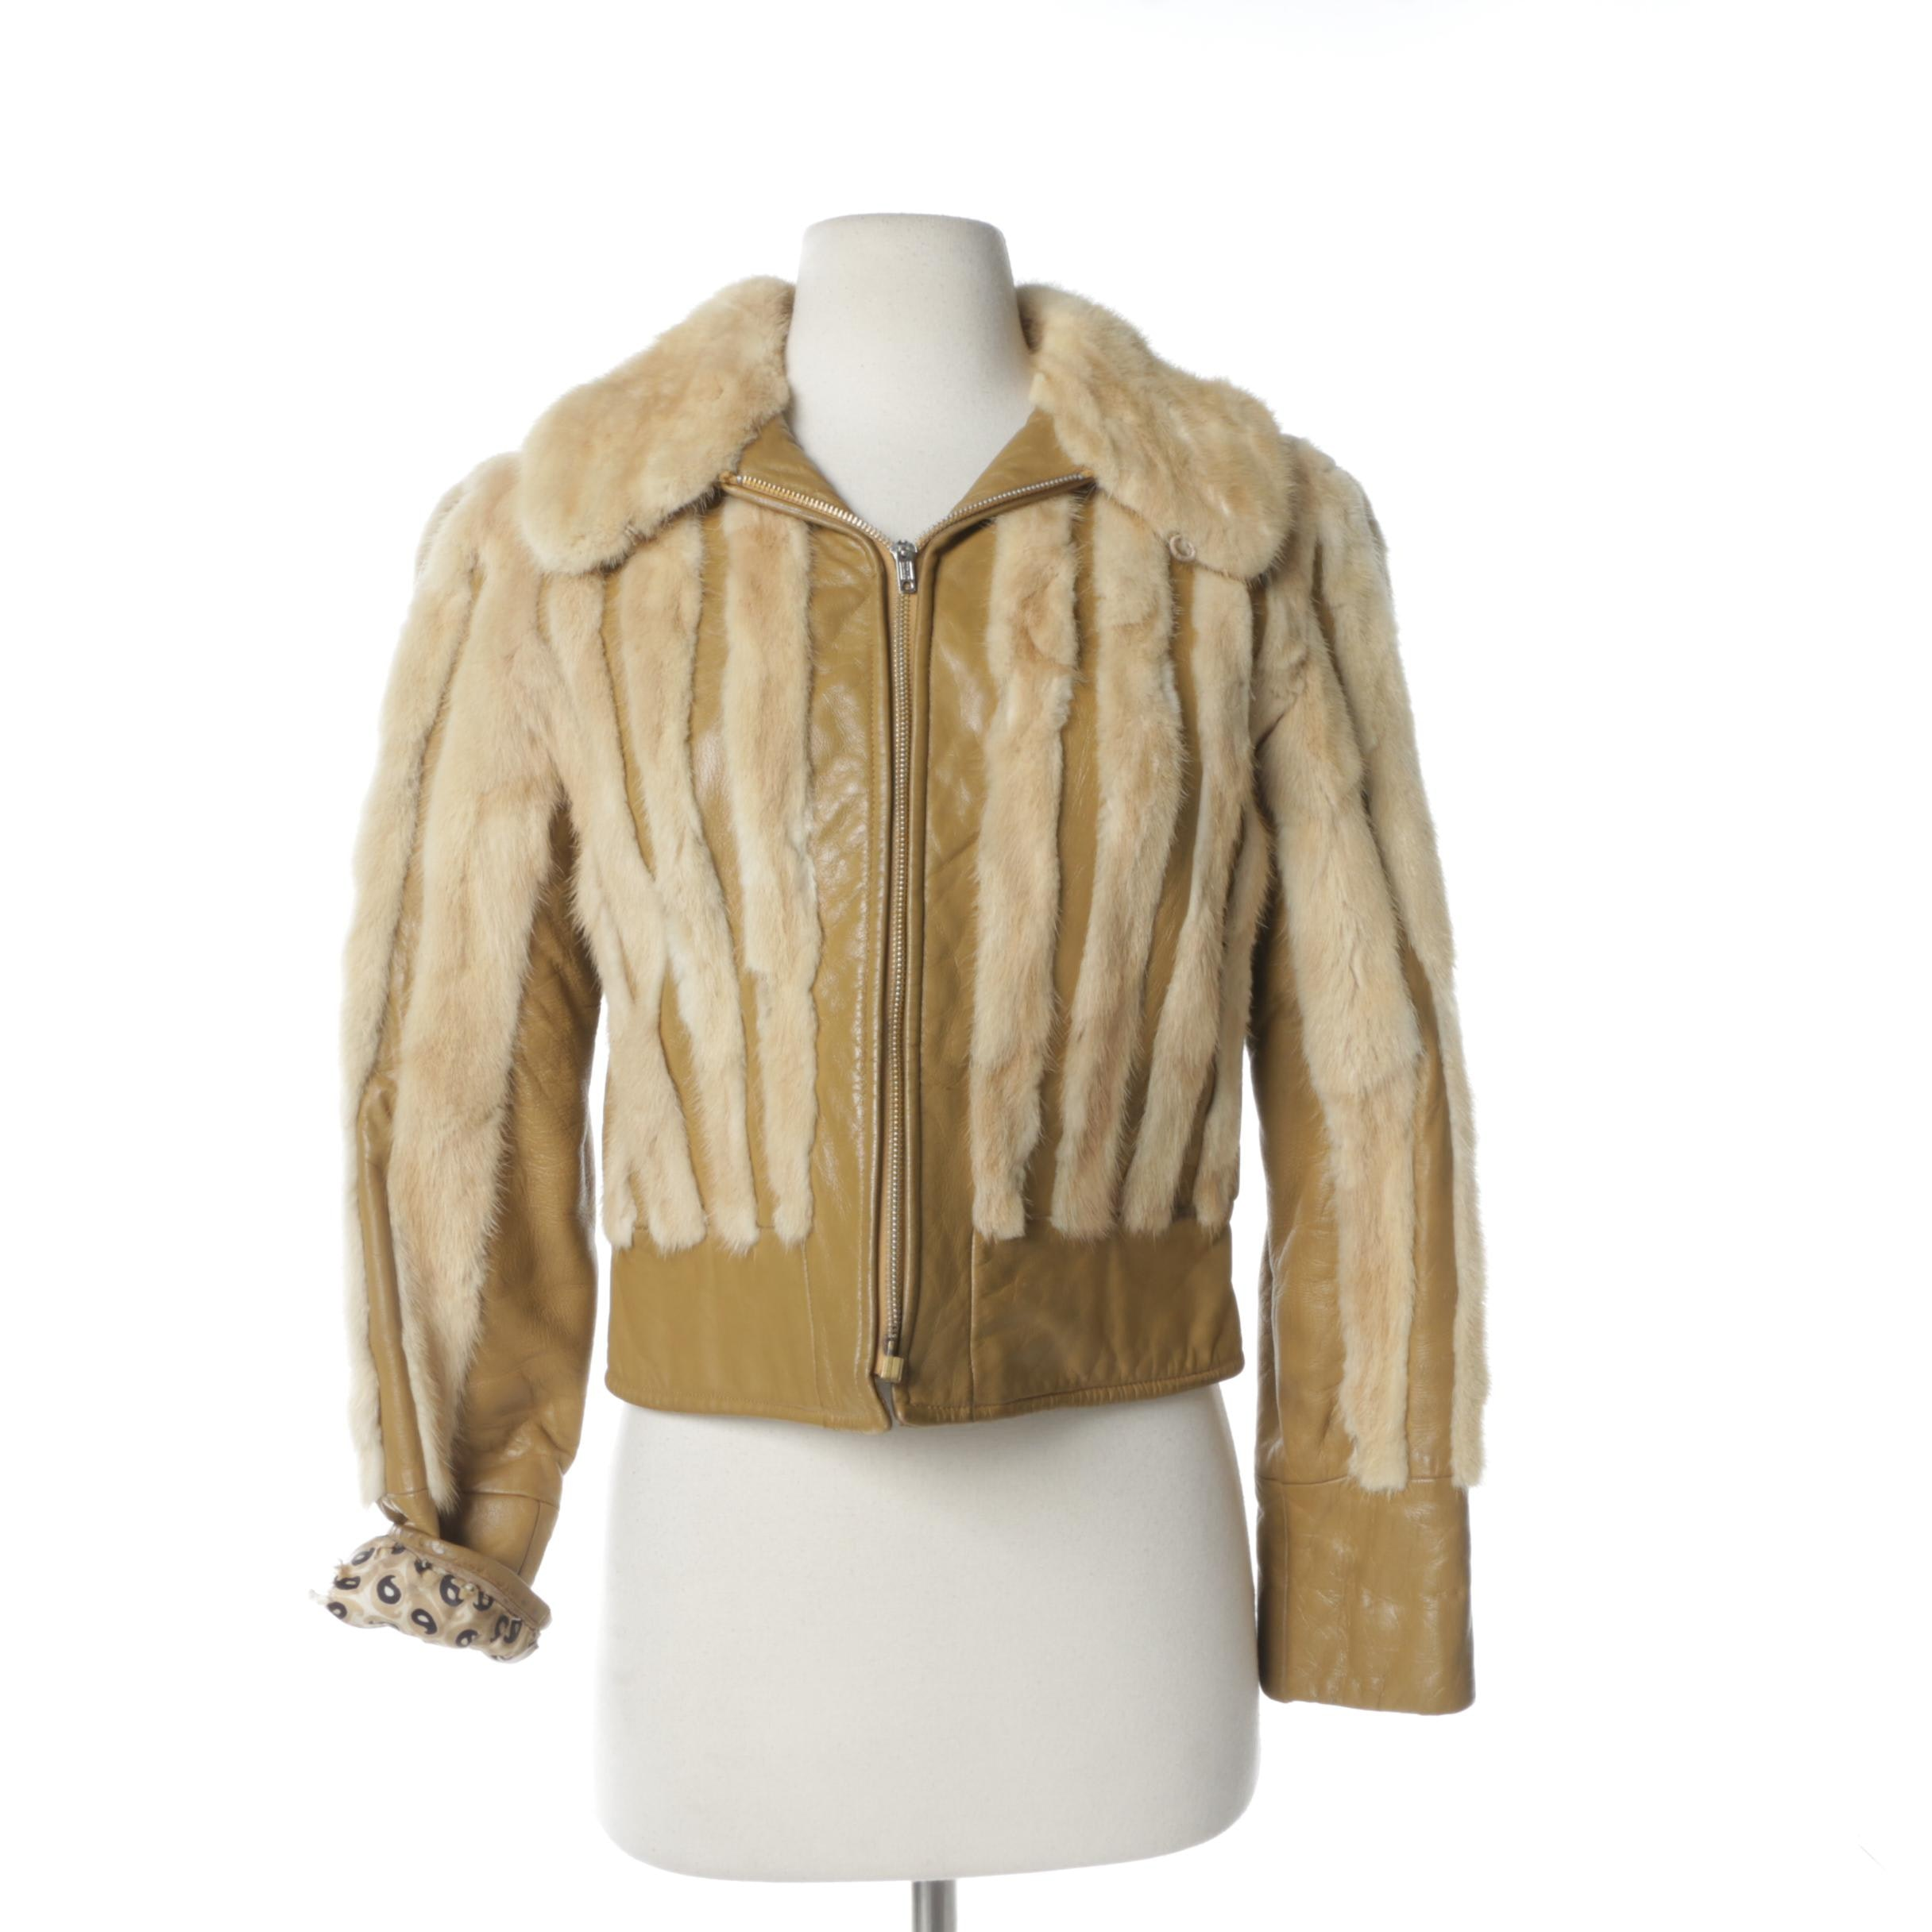 Women's 1970s Leather and Mink Fur Cropped Jacket